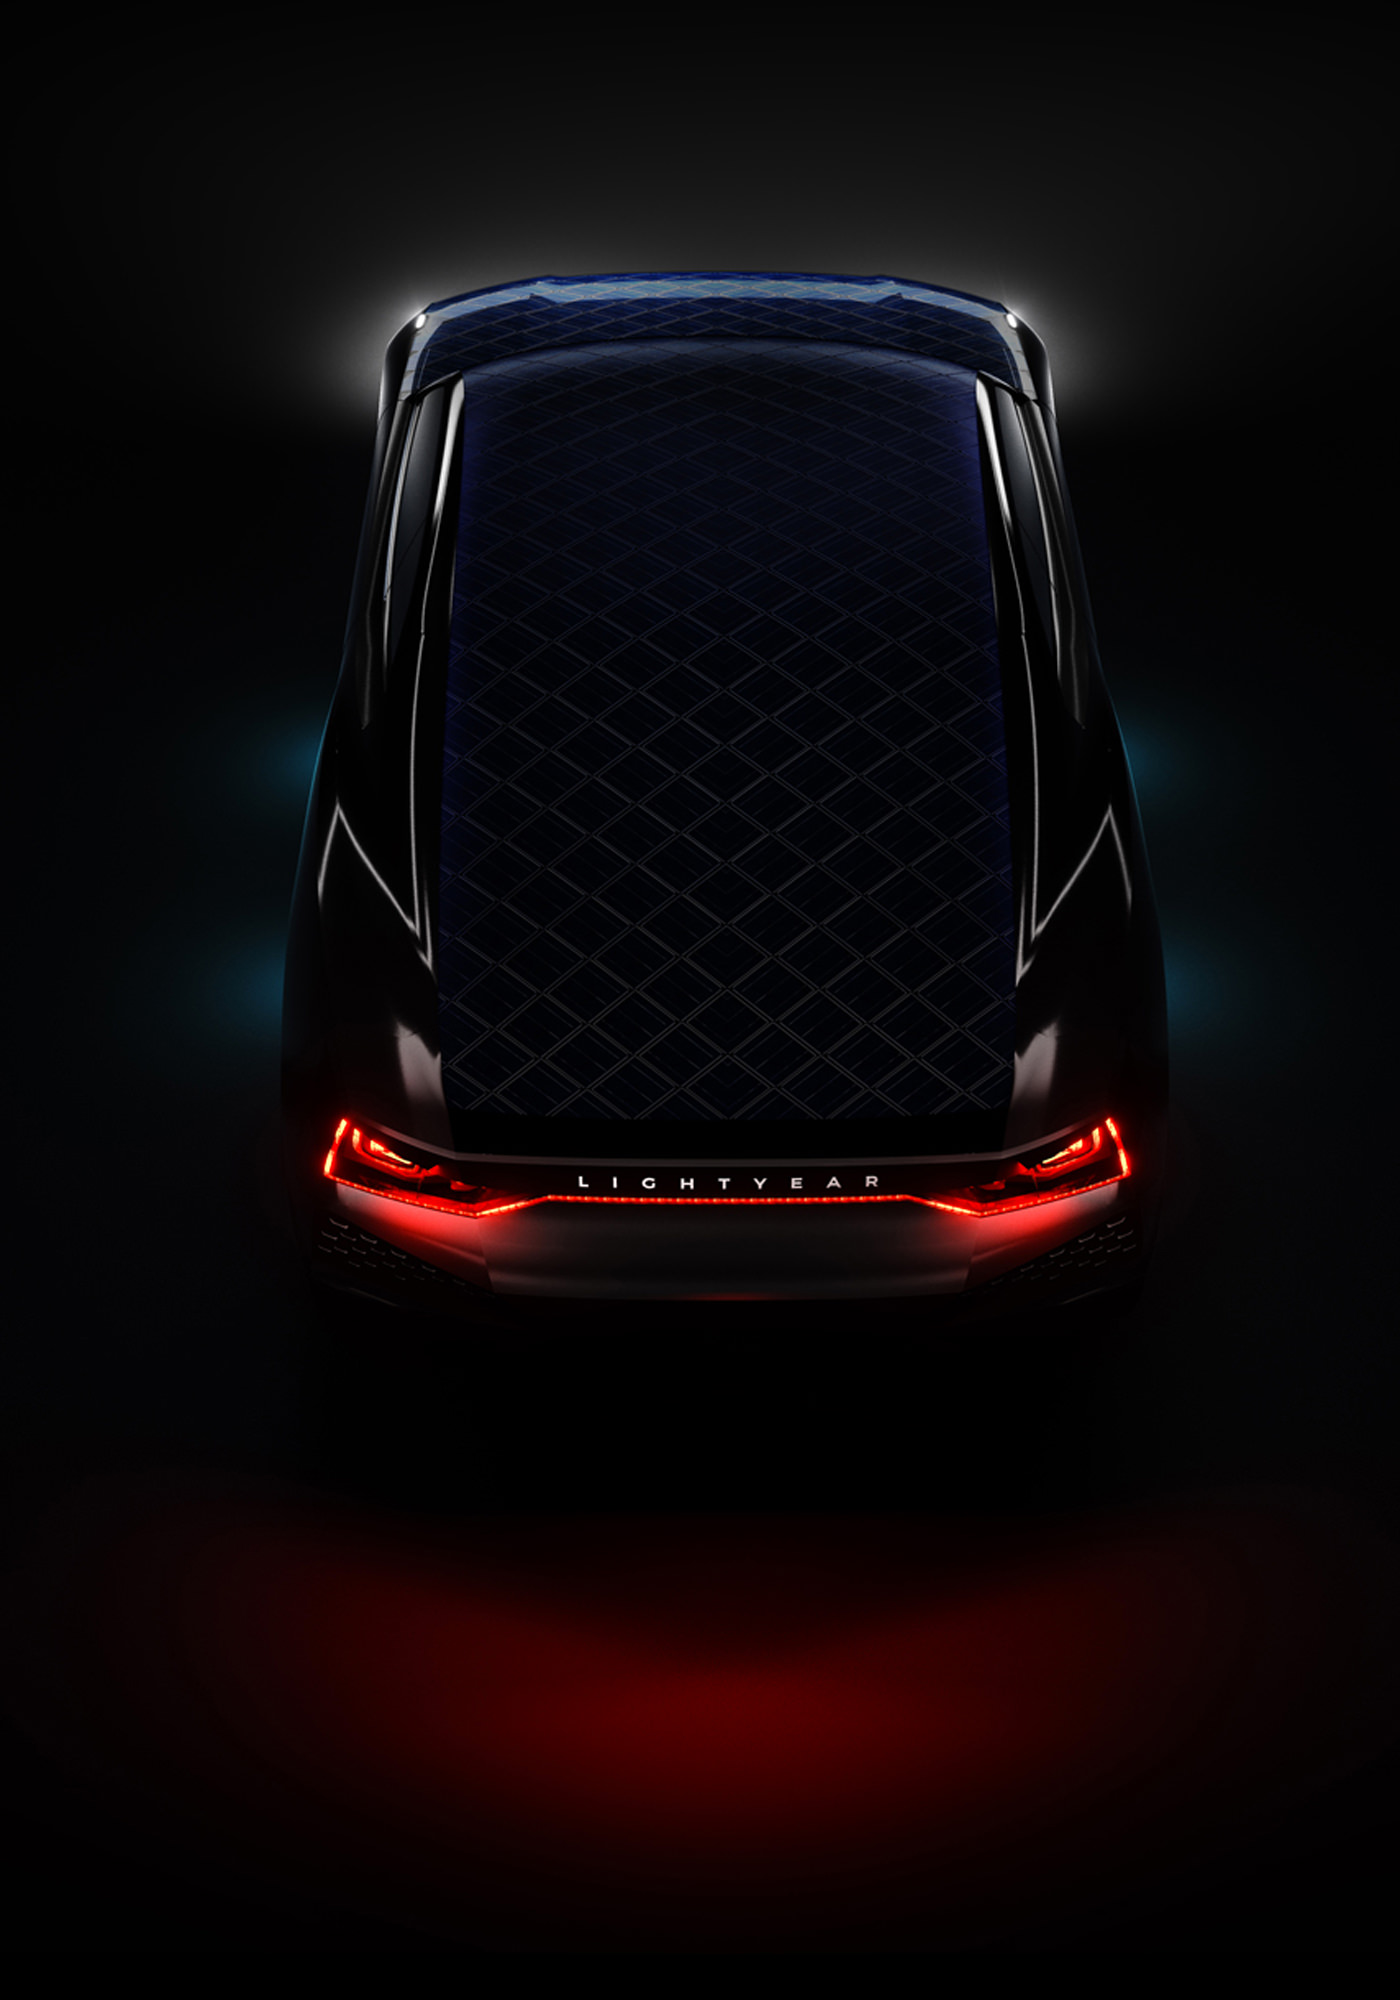 Lightyear One Voiture Electrique Chargement Solaire Teaser